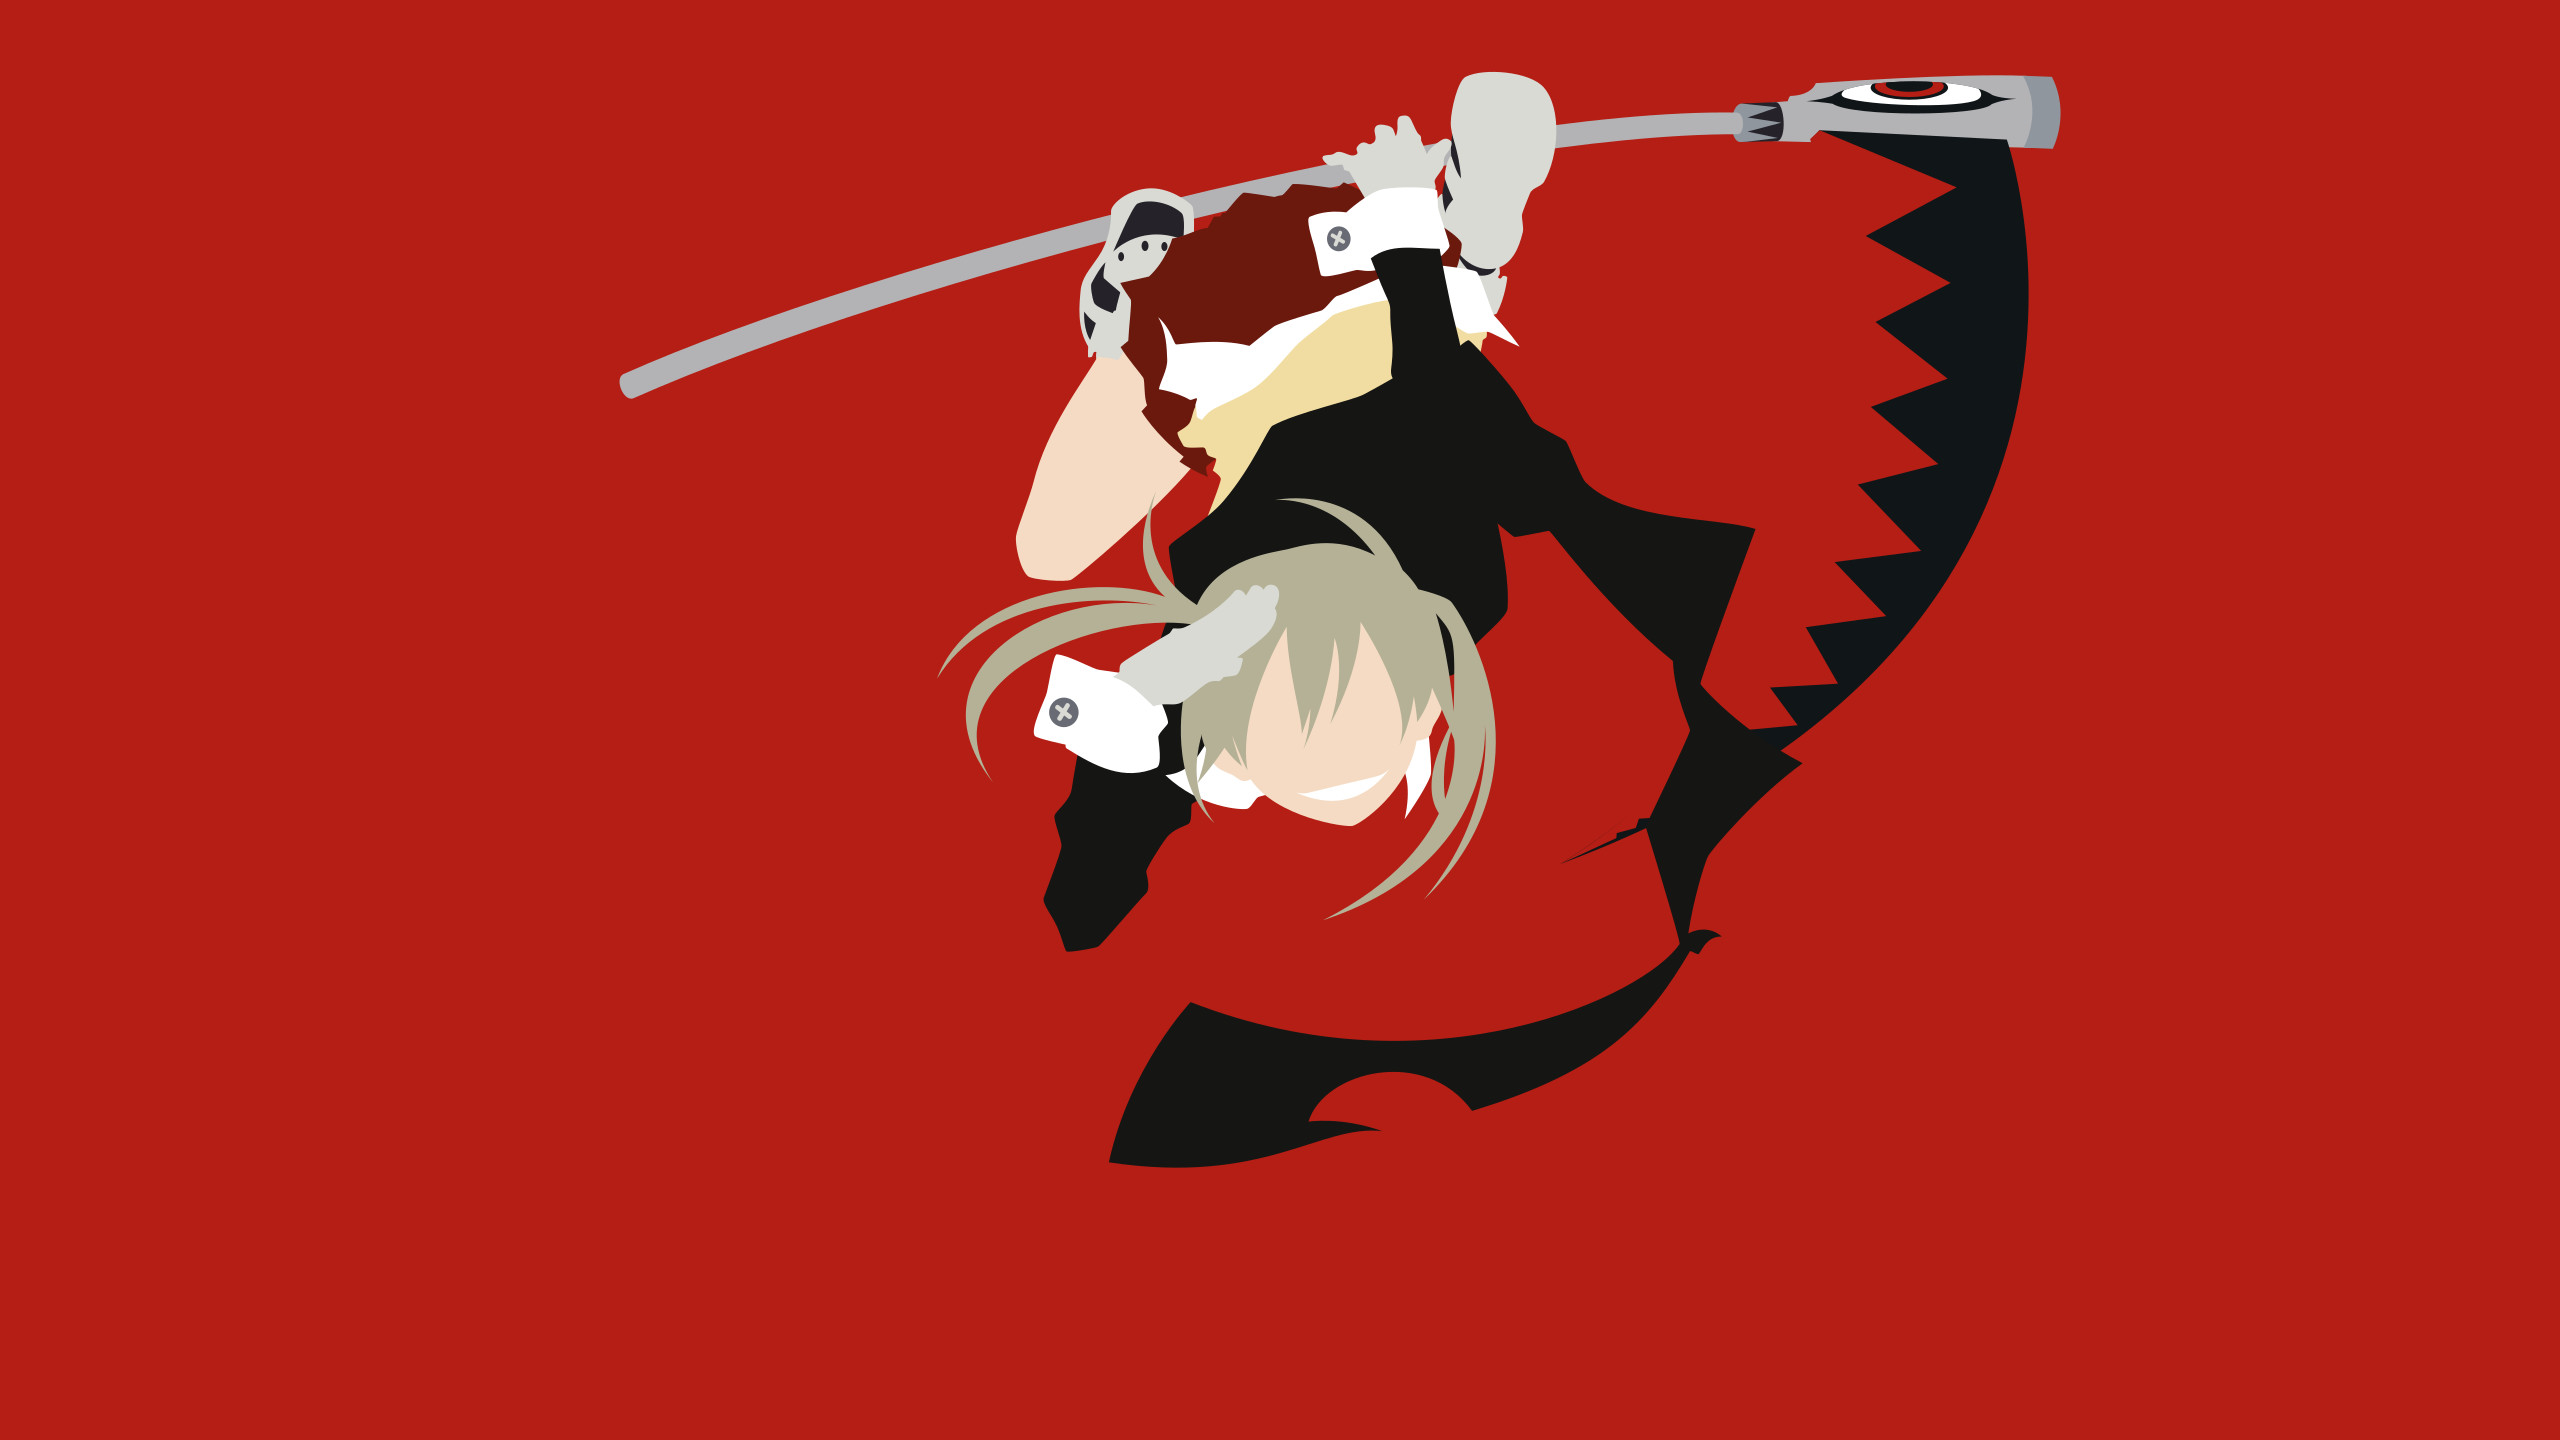 Res: 2560x1440, ... Soul Eater - Maka Albarn minimalism wallpaper by Carionto